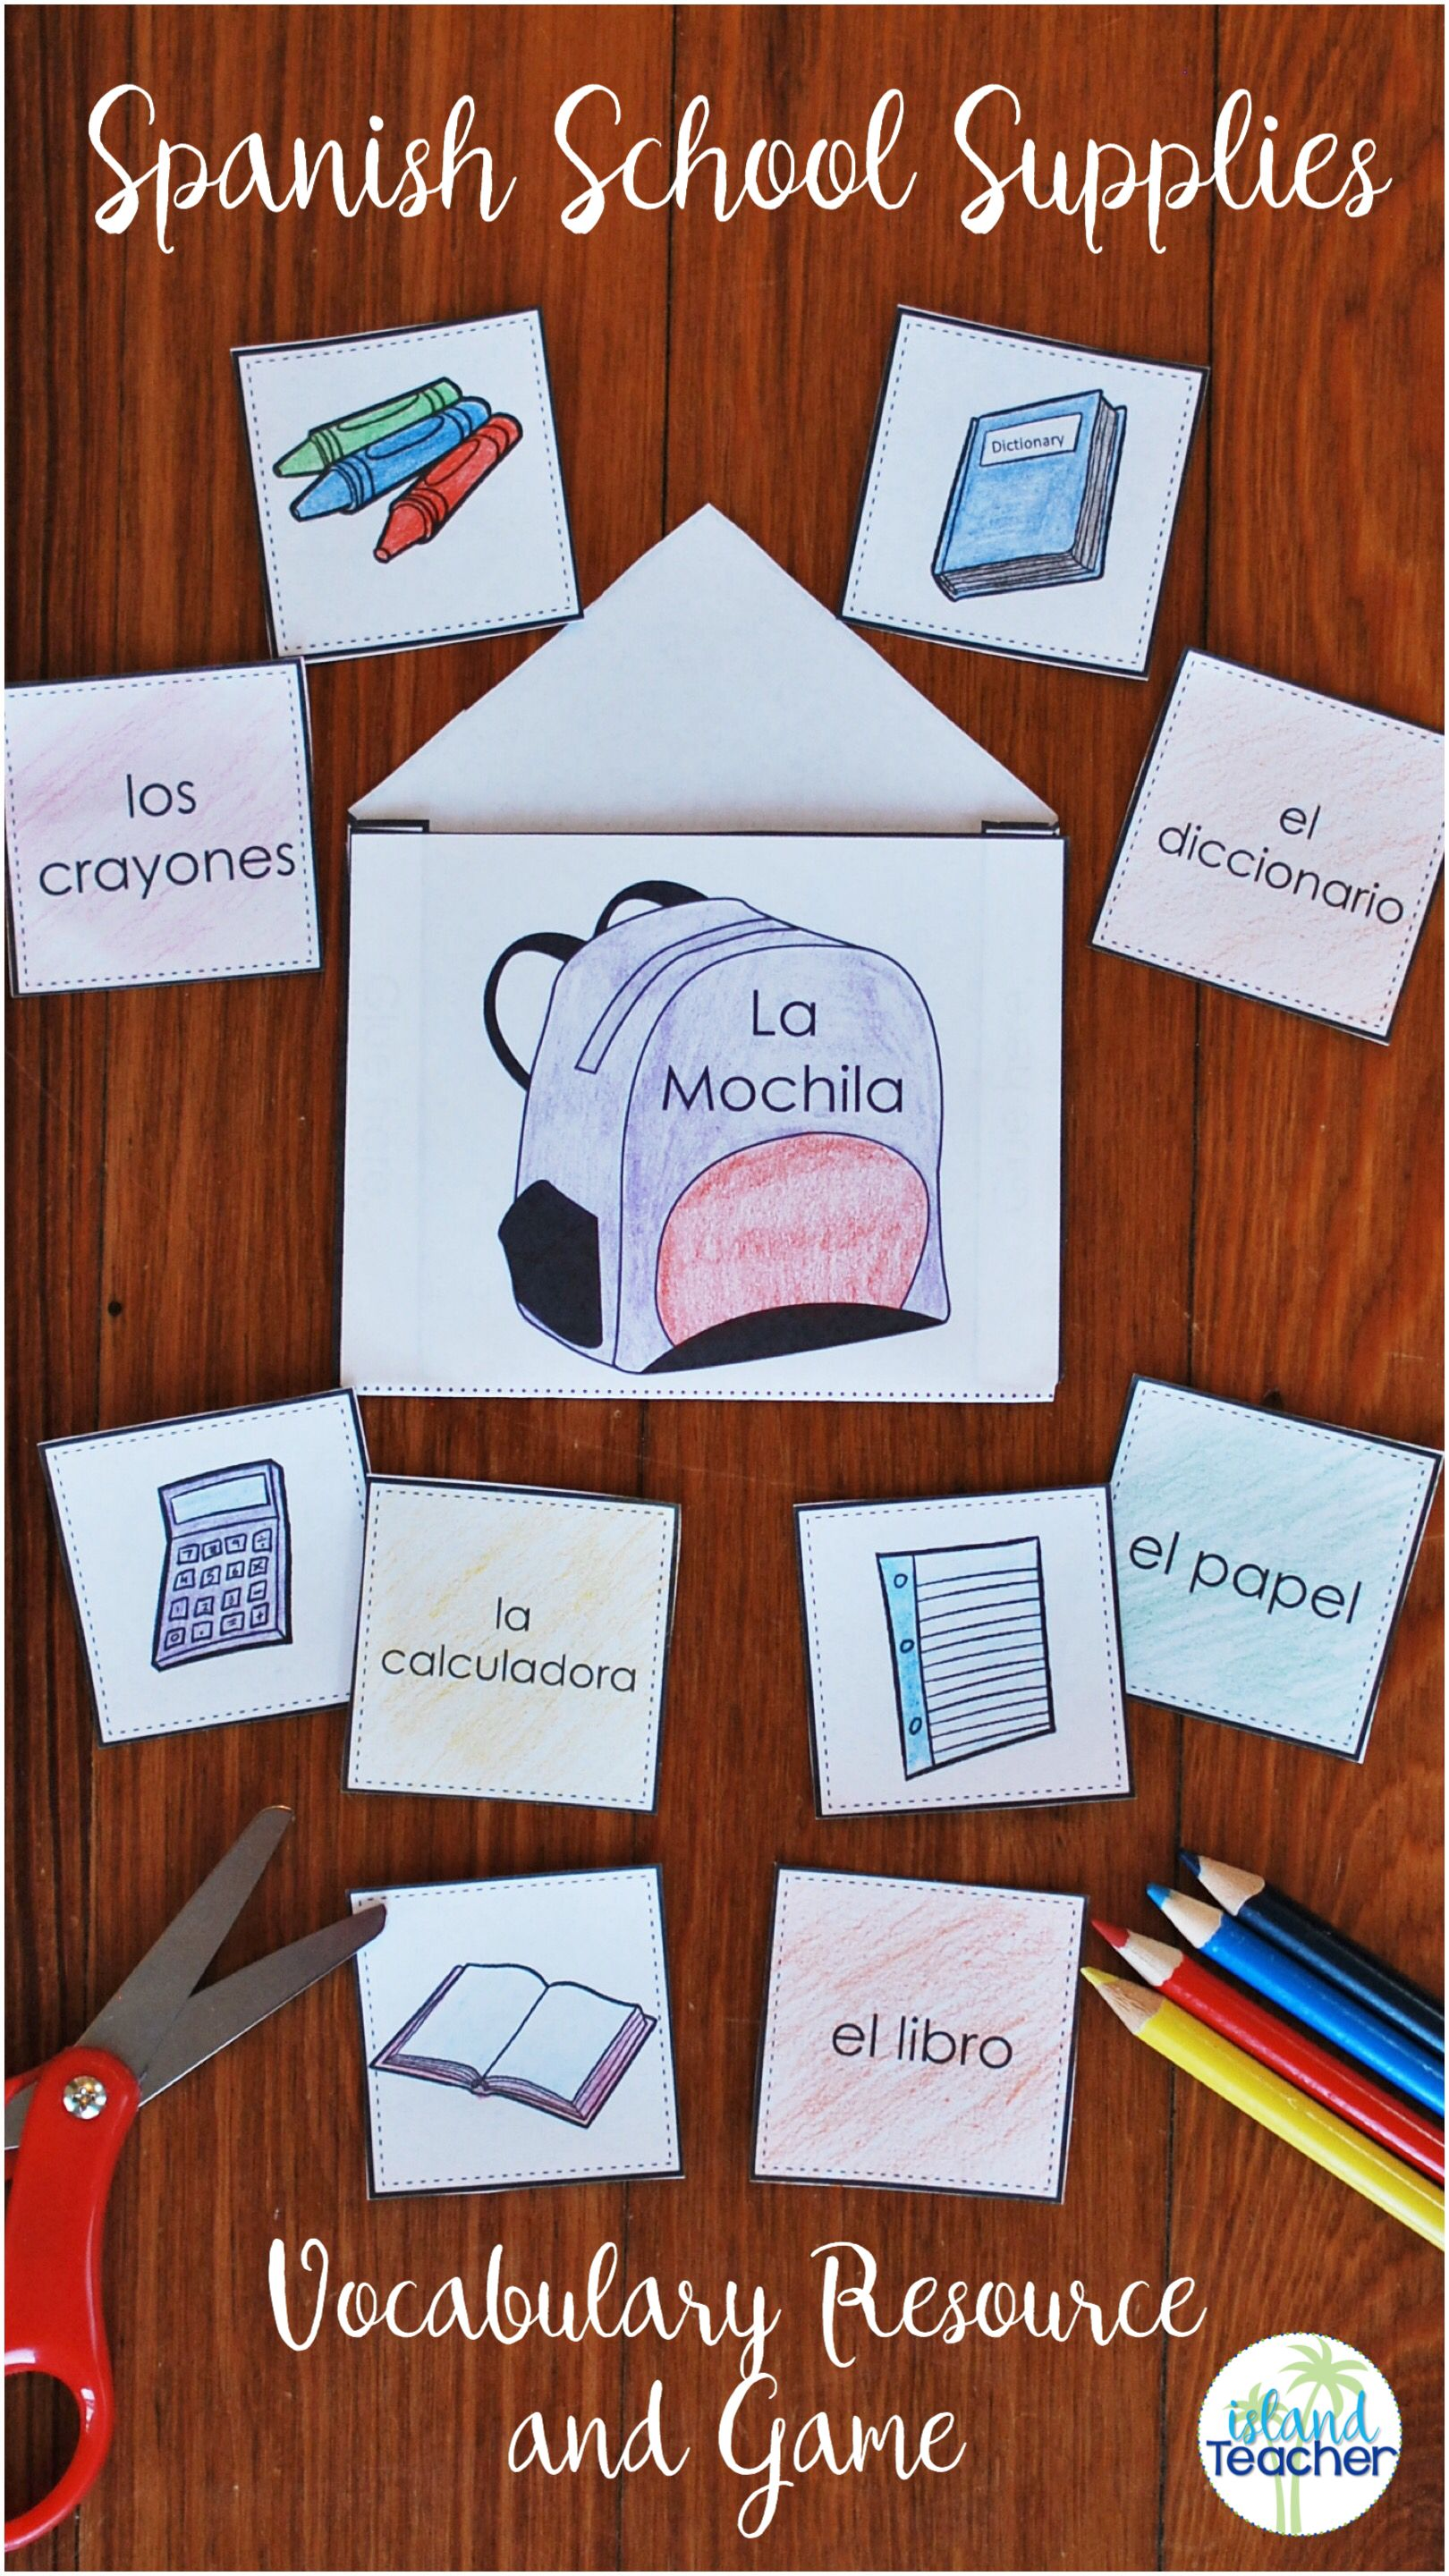 Spanish School Supplies Interactive Notebook Activity